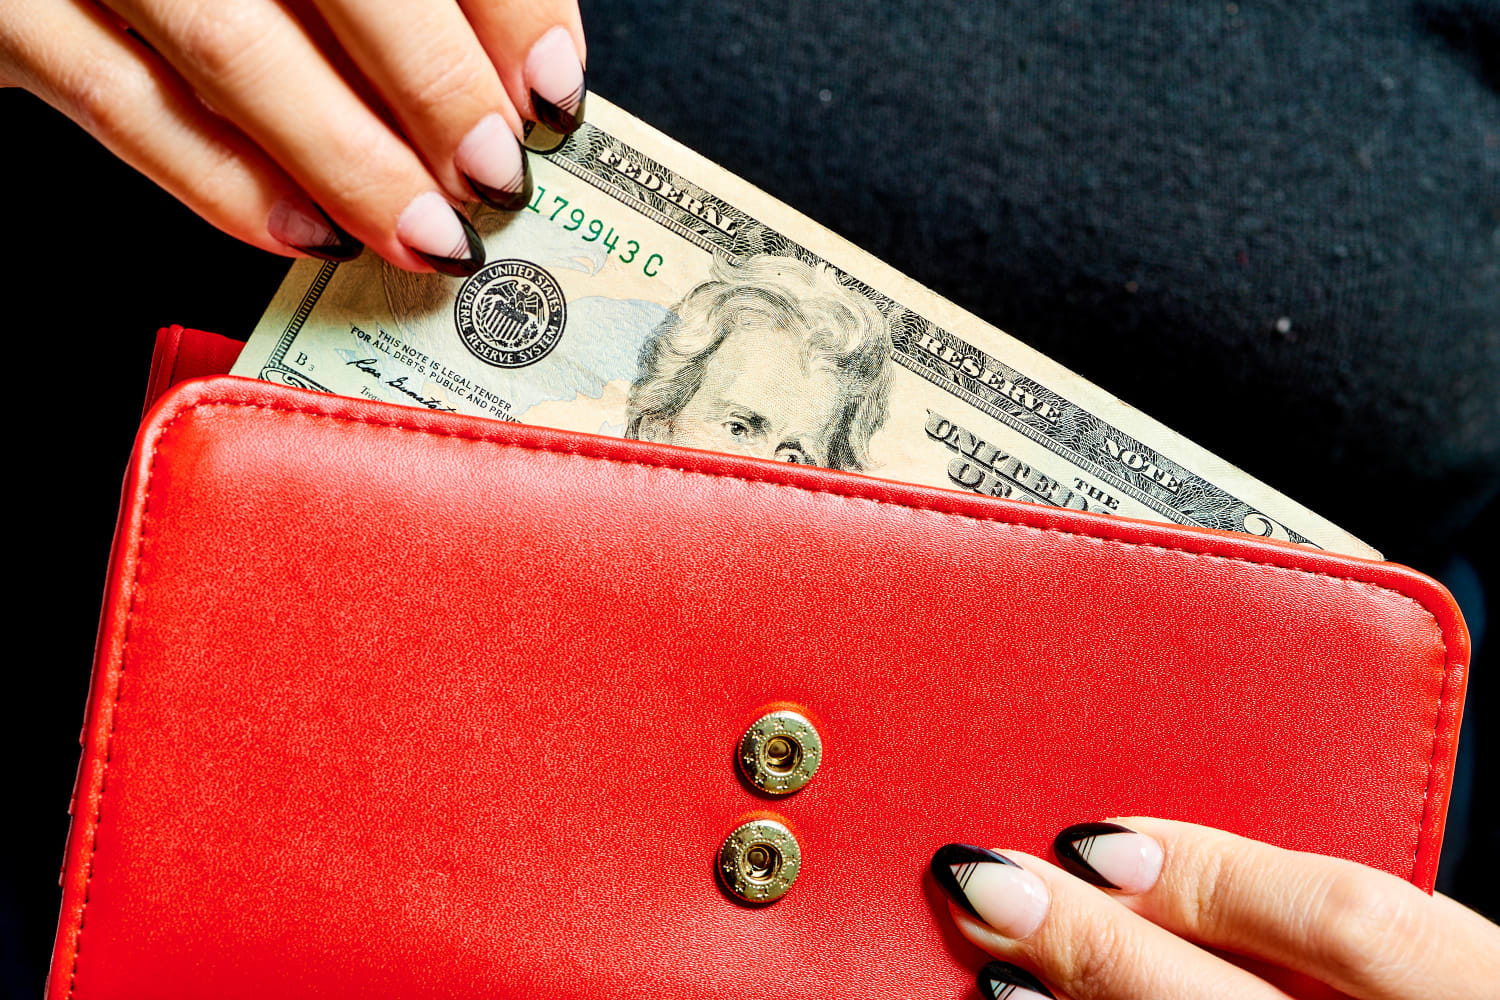 15 No-Spend Challenge Ideas (Plus 3 Important Rules) You Can Try to Save Money